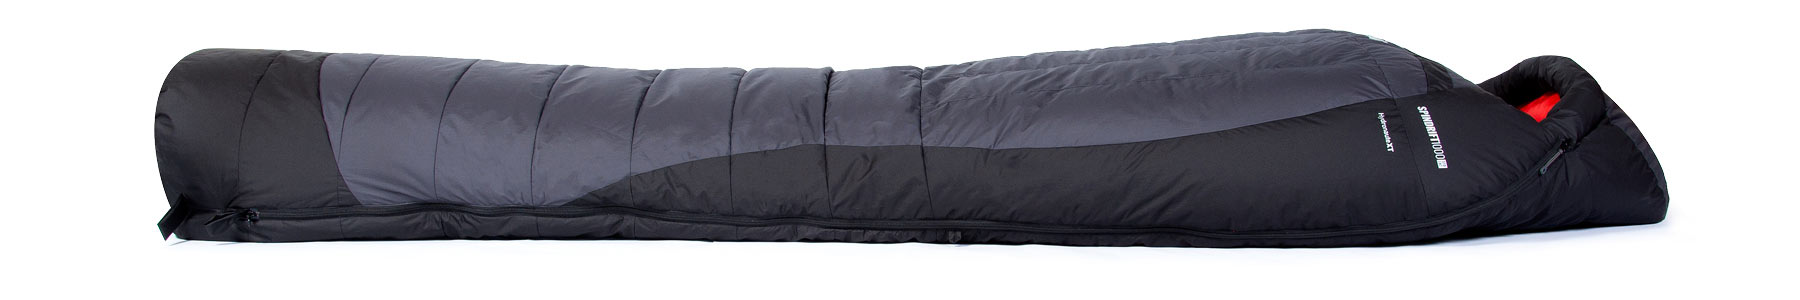 Spindrift XT Down Sleeping Bag Series